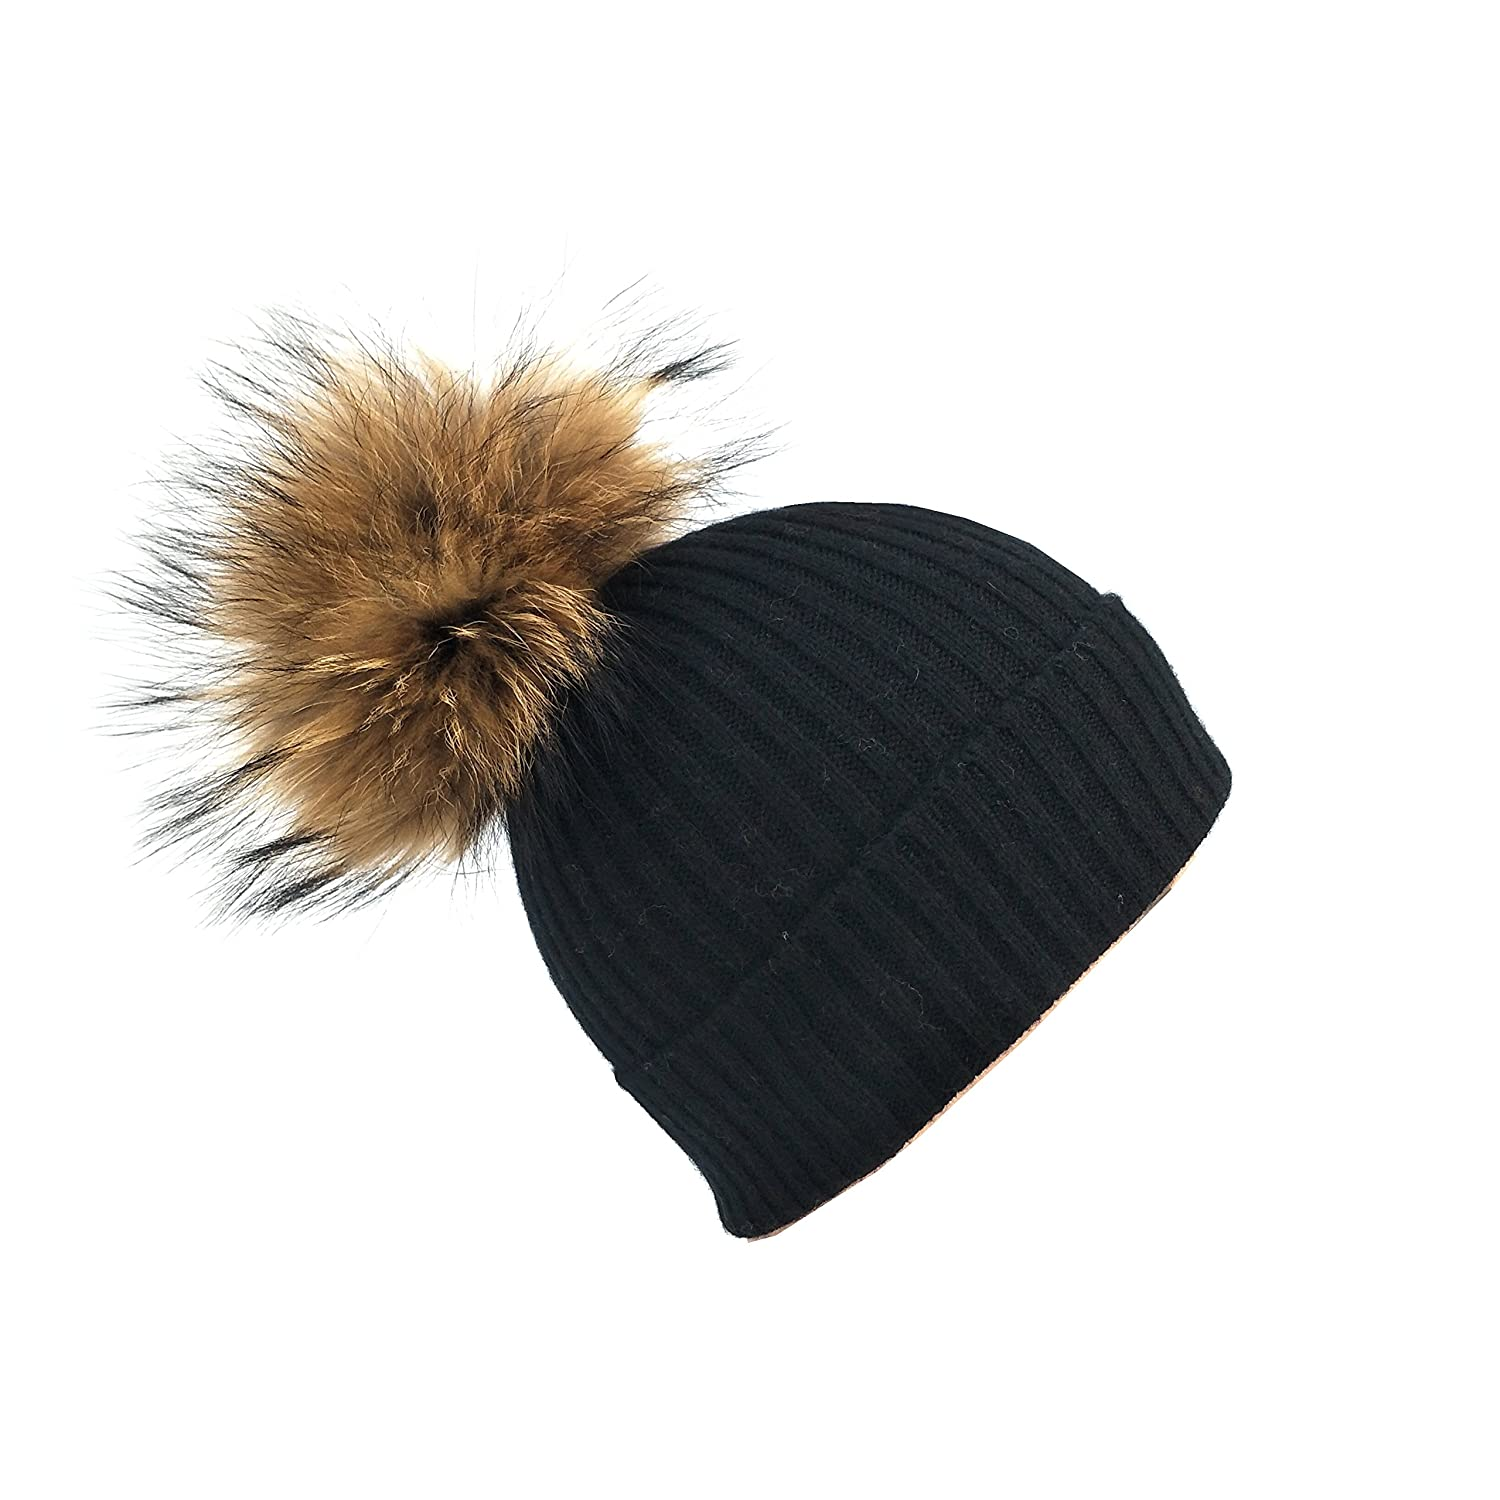 2588e1867cb57d Dilly Fashion Womens Girls Winter Knitted 100% Cashmere Beanie Hat with  Detachable Real Fur Pom Pom (Black) at Amazon Women's Clothing store: